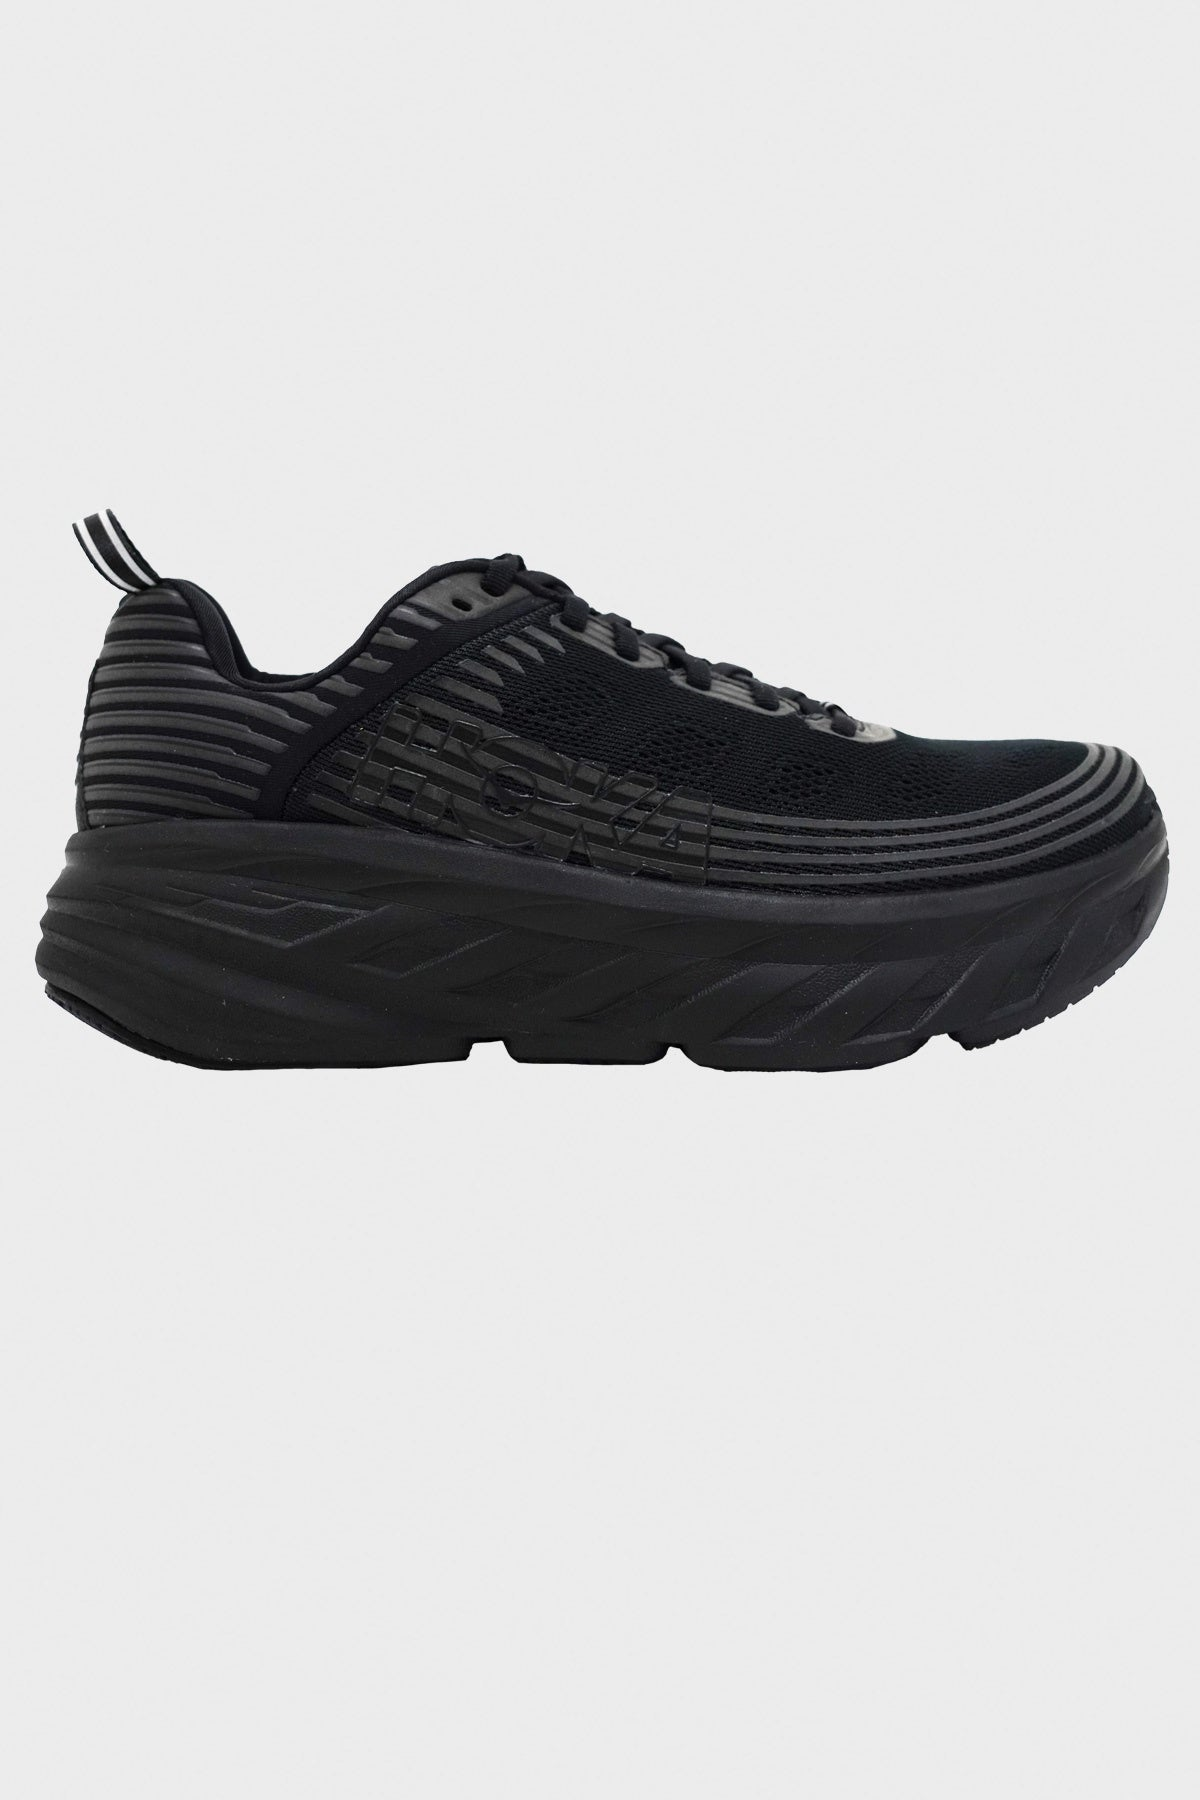 HOKA ONE ONE - Bondi 6 - Black - Canoe Club